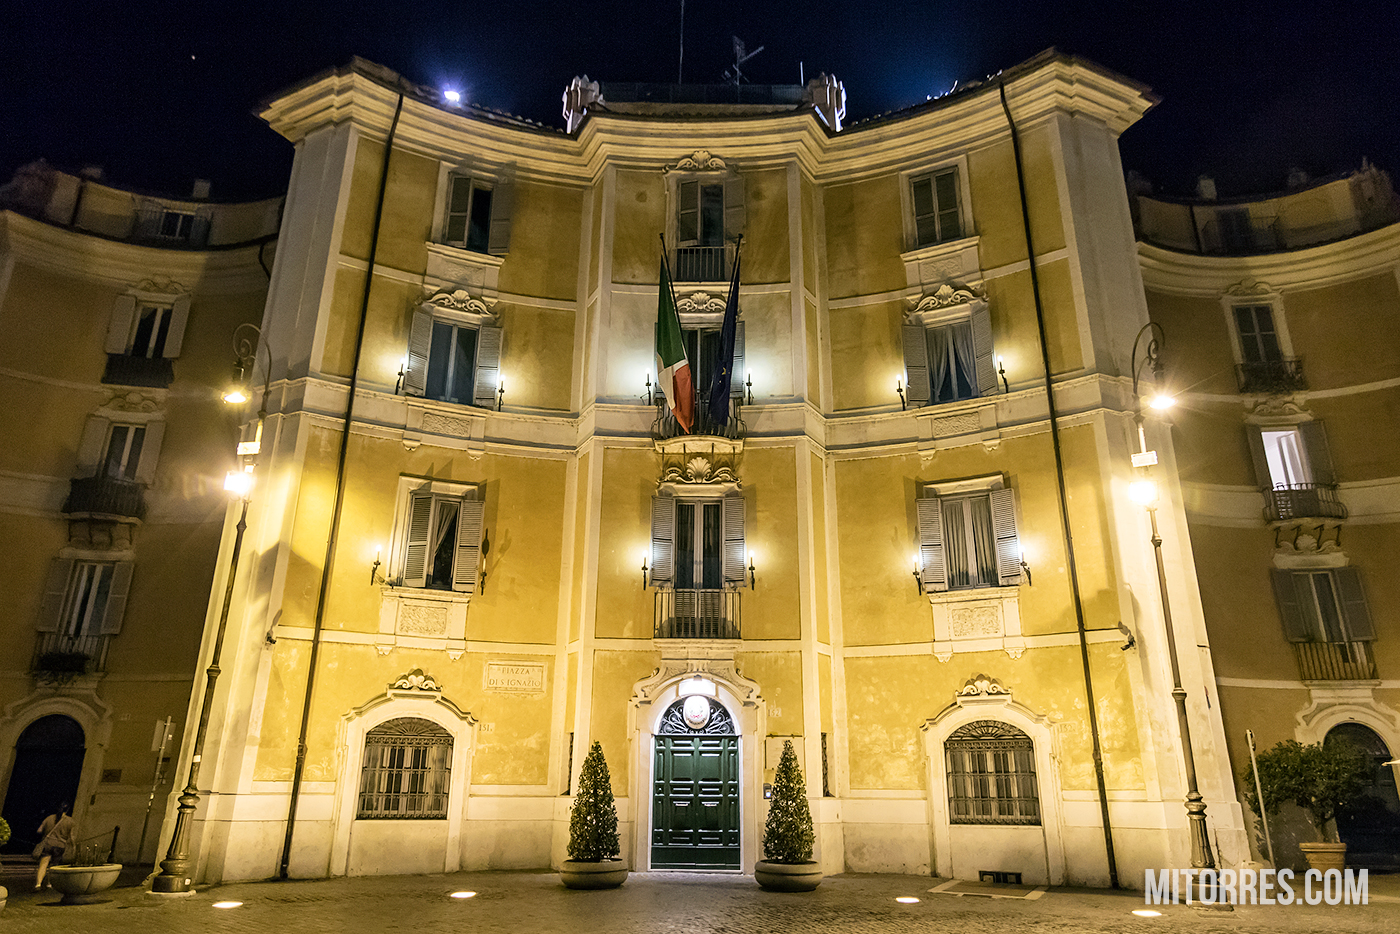 Building in Piazza Di Signazio, Rome, Italy. Photo: Marlon I. Torres